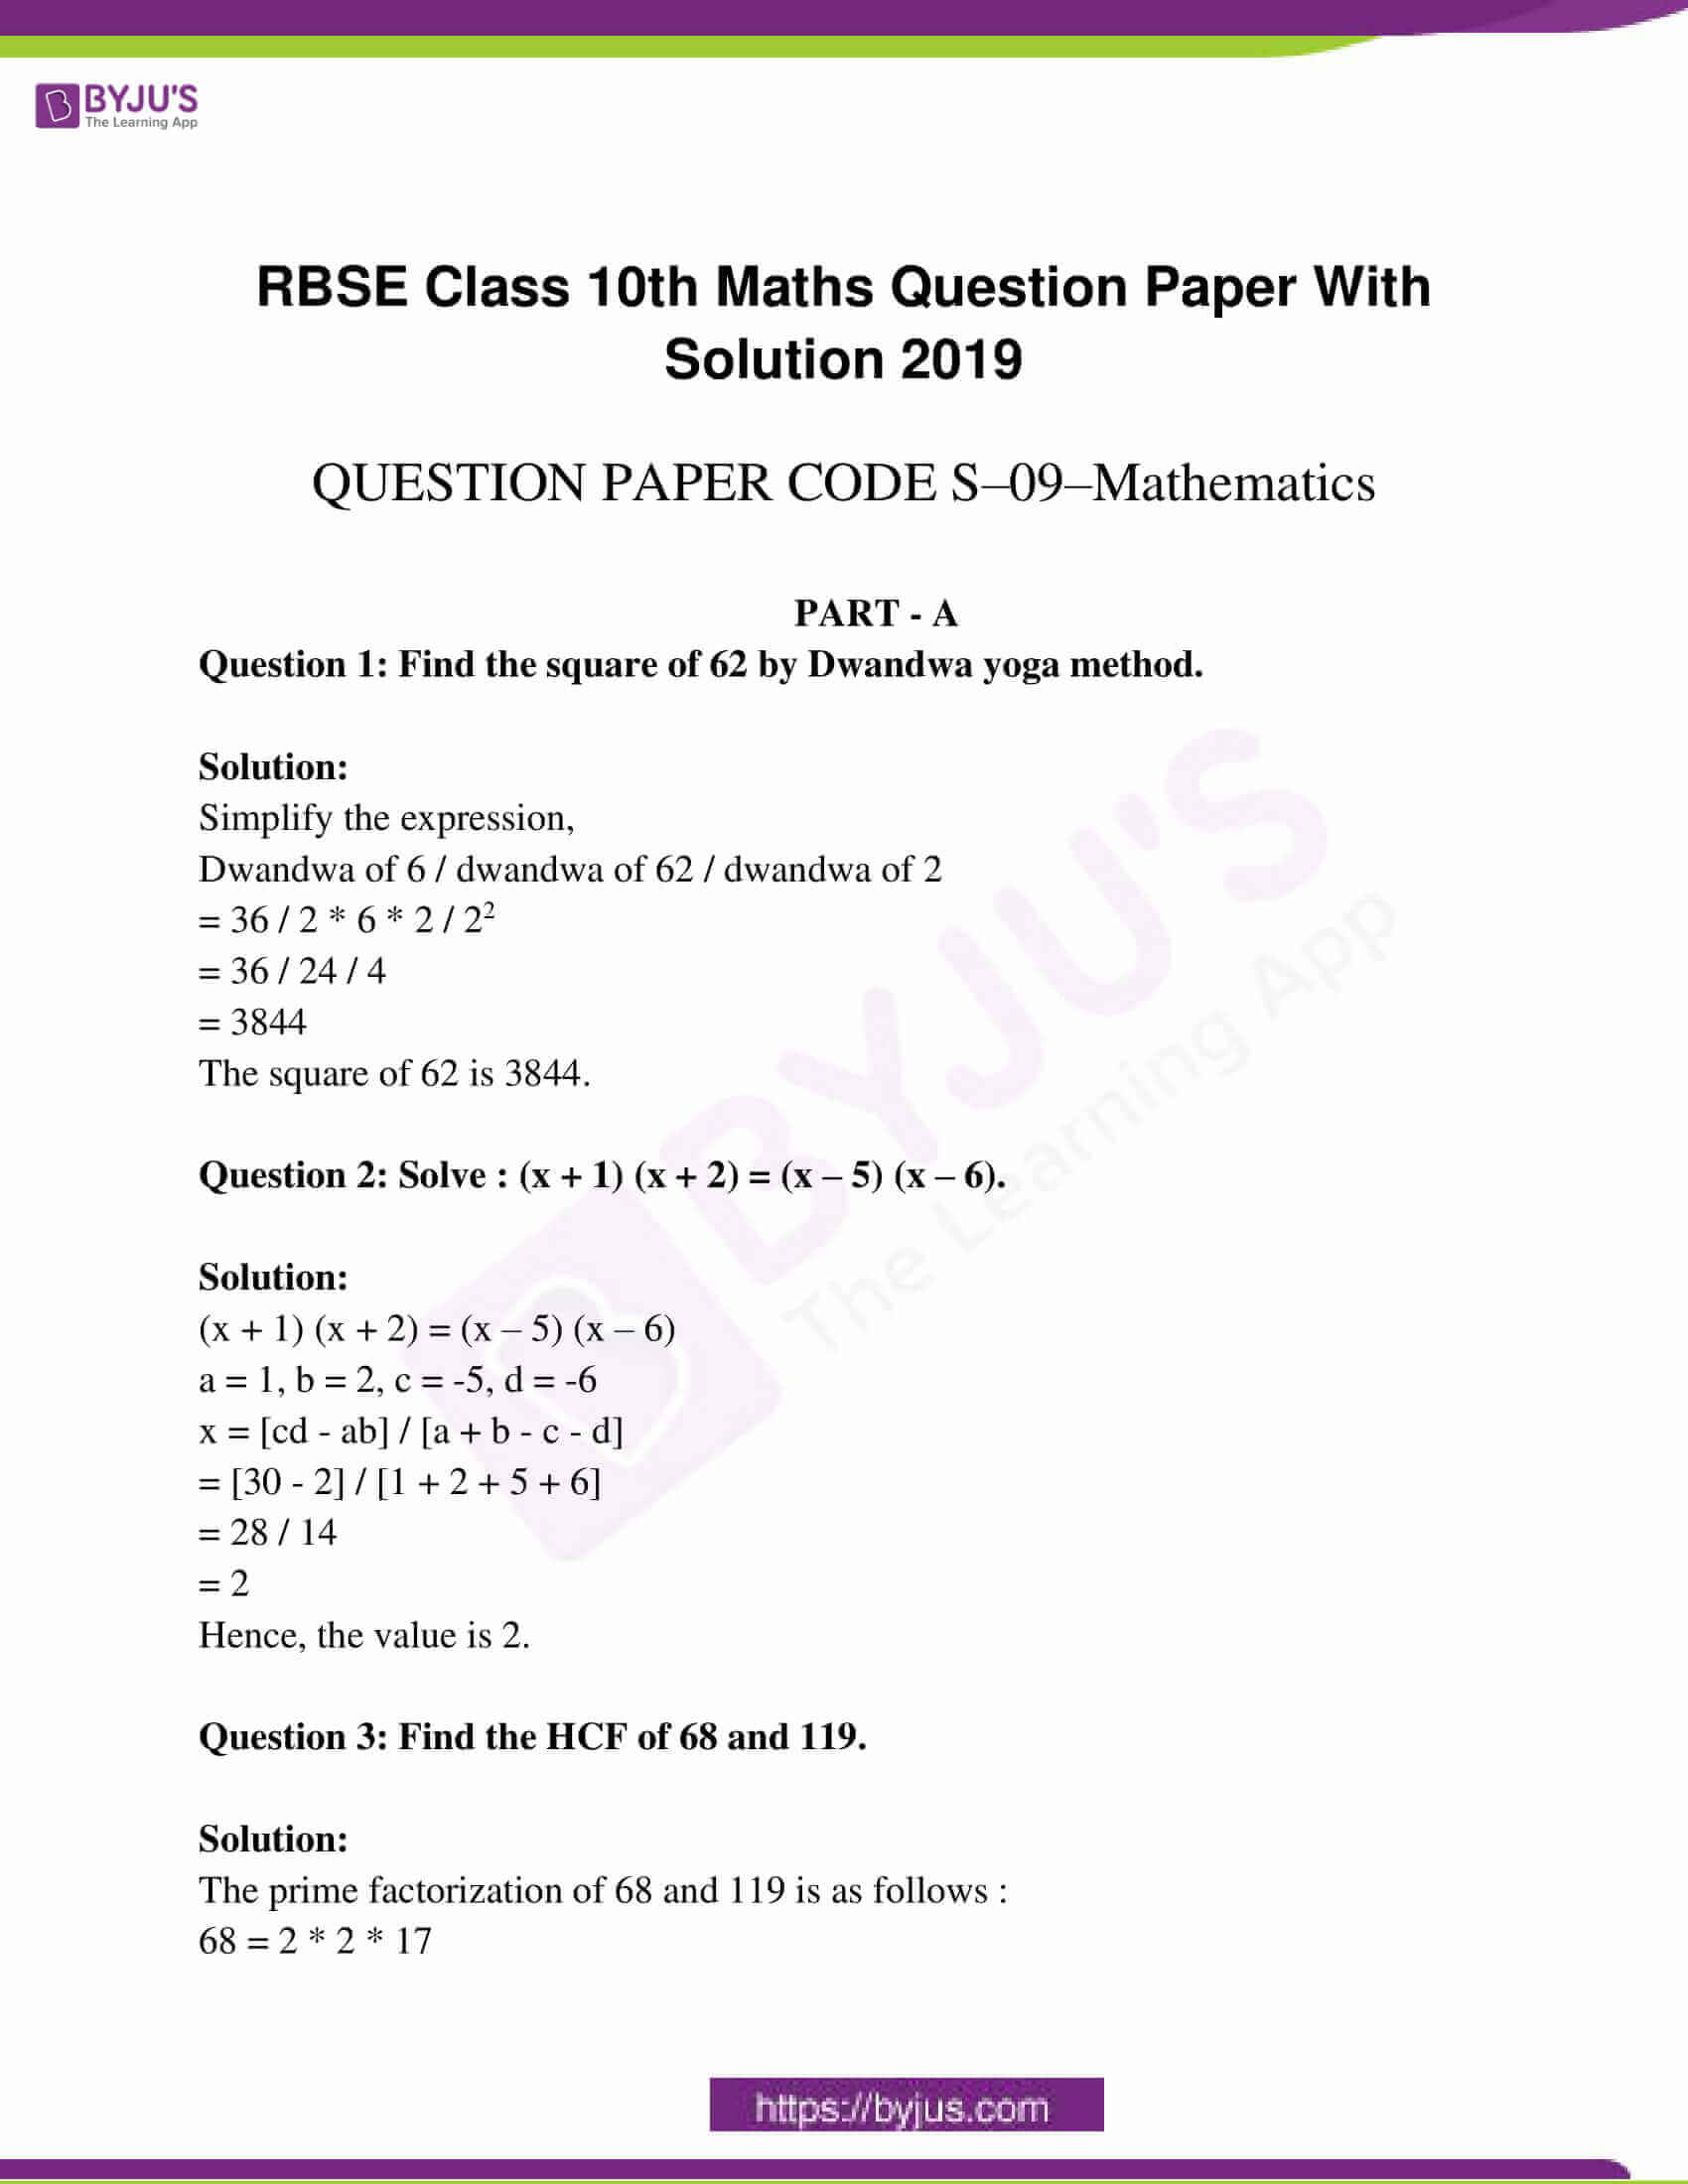 rajasthan board class 10 examination question paper sol march 2019 01